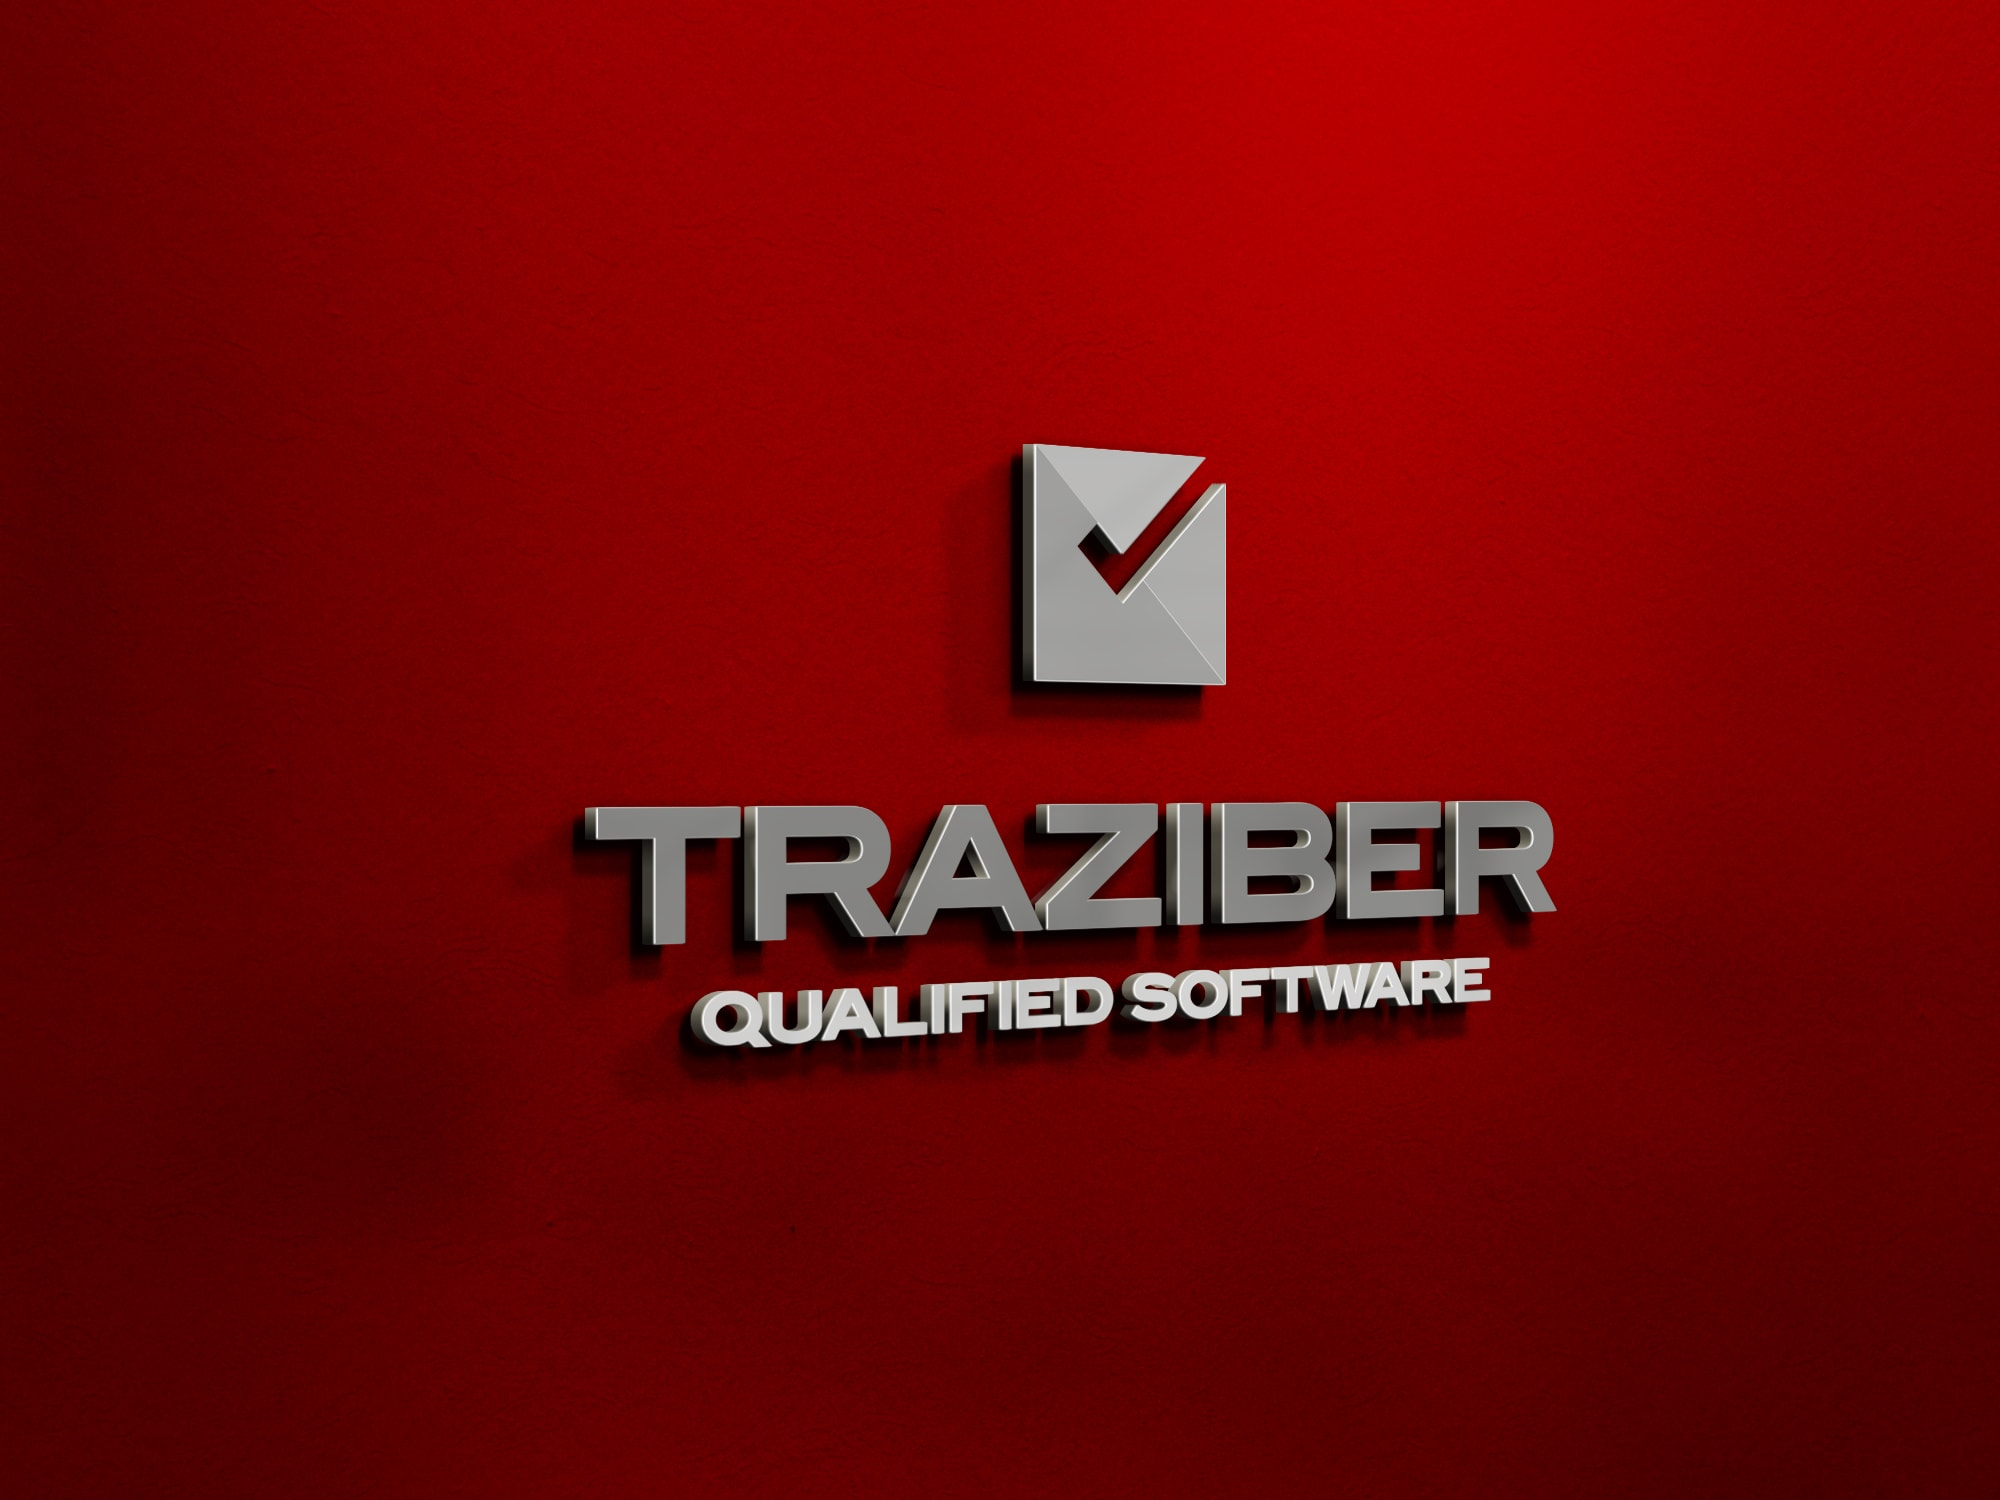 Traziber Qualified Software